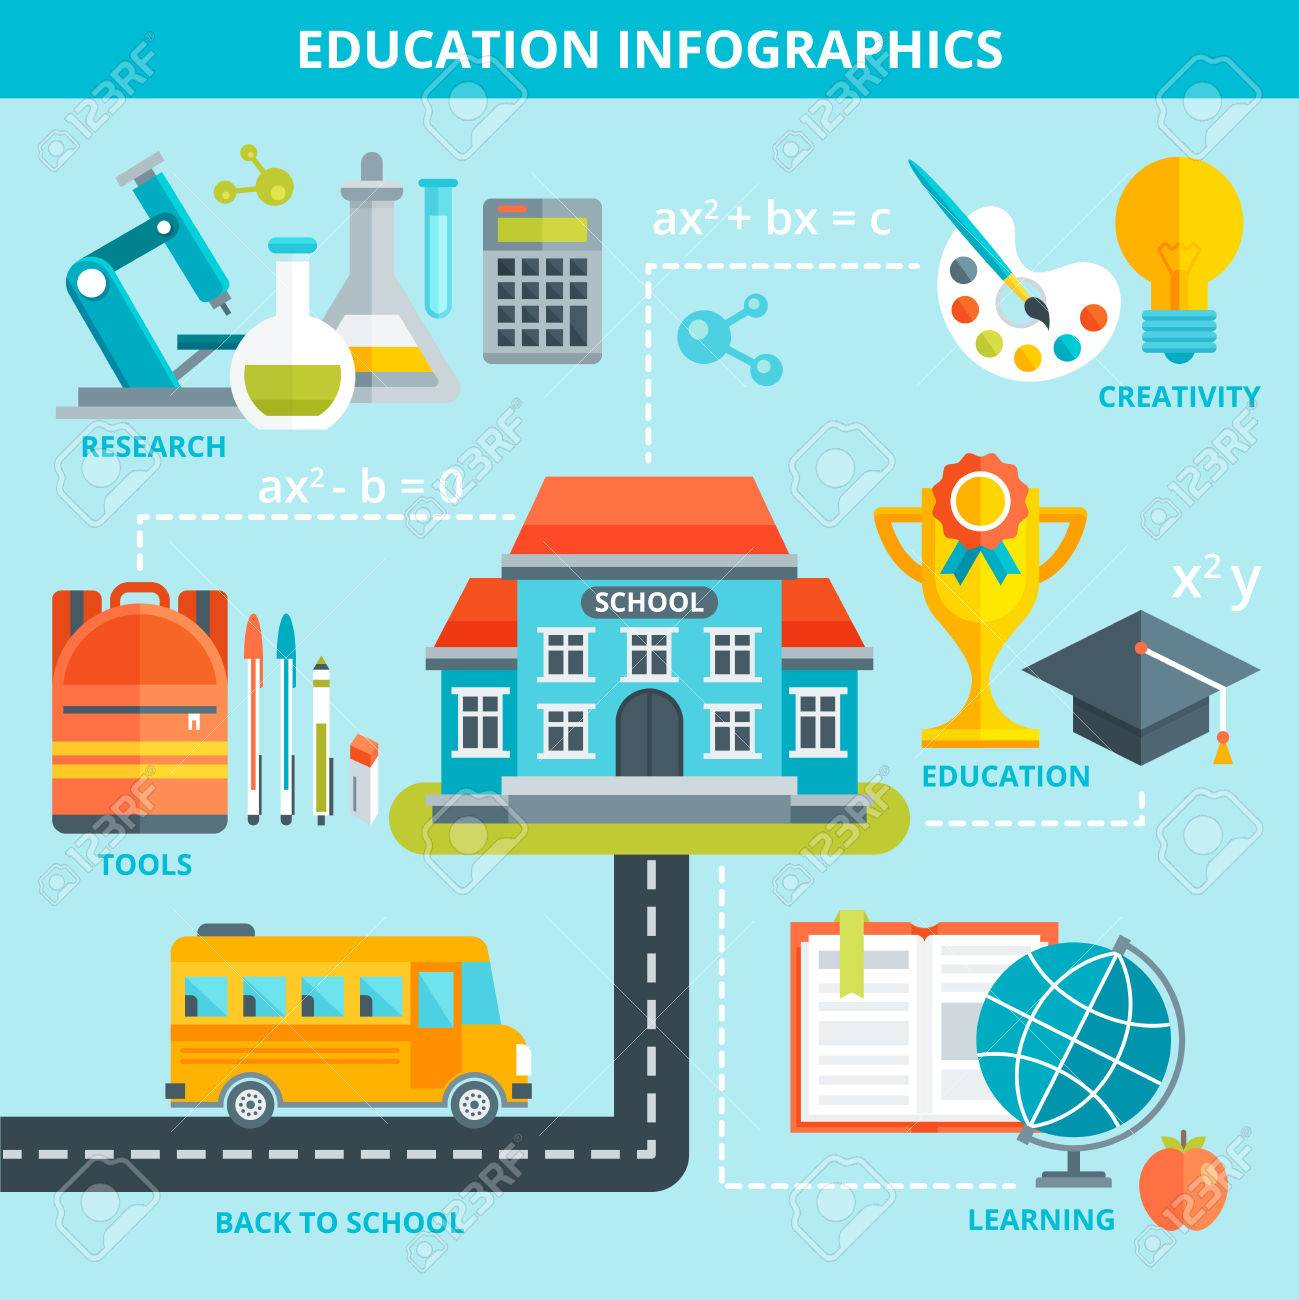 education infographics template with school building in center